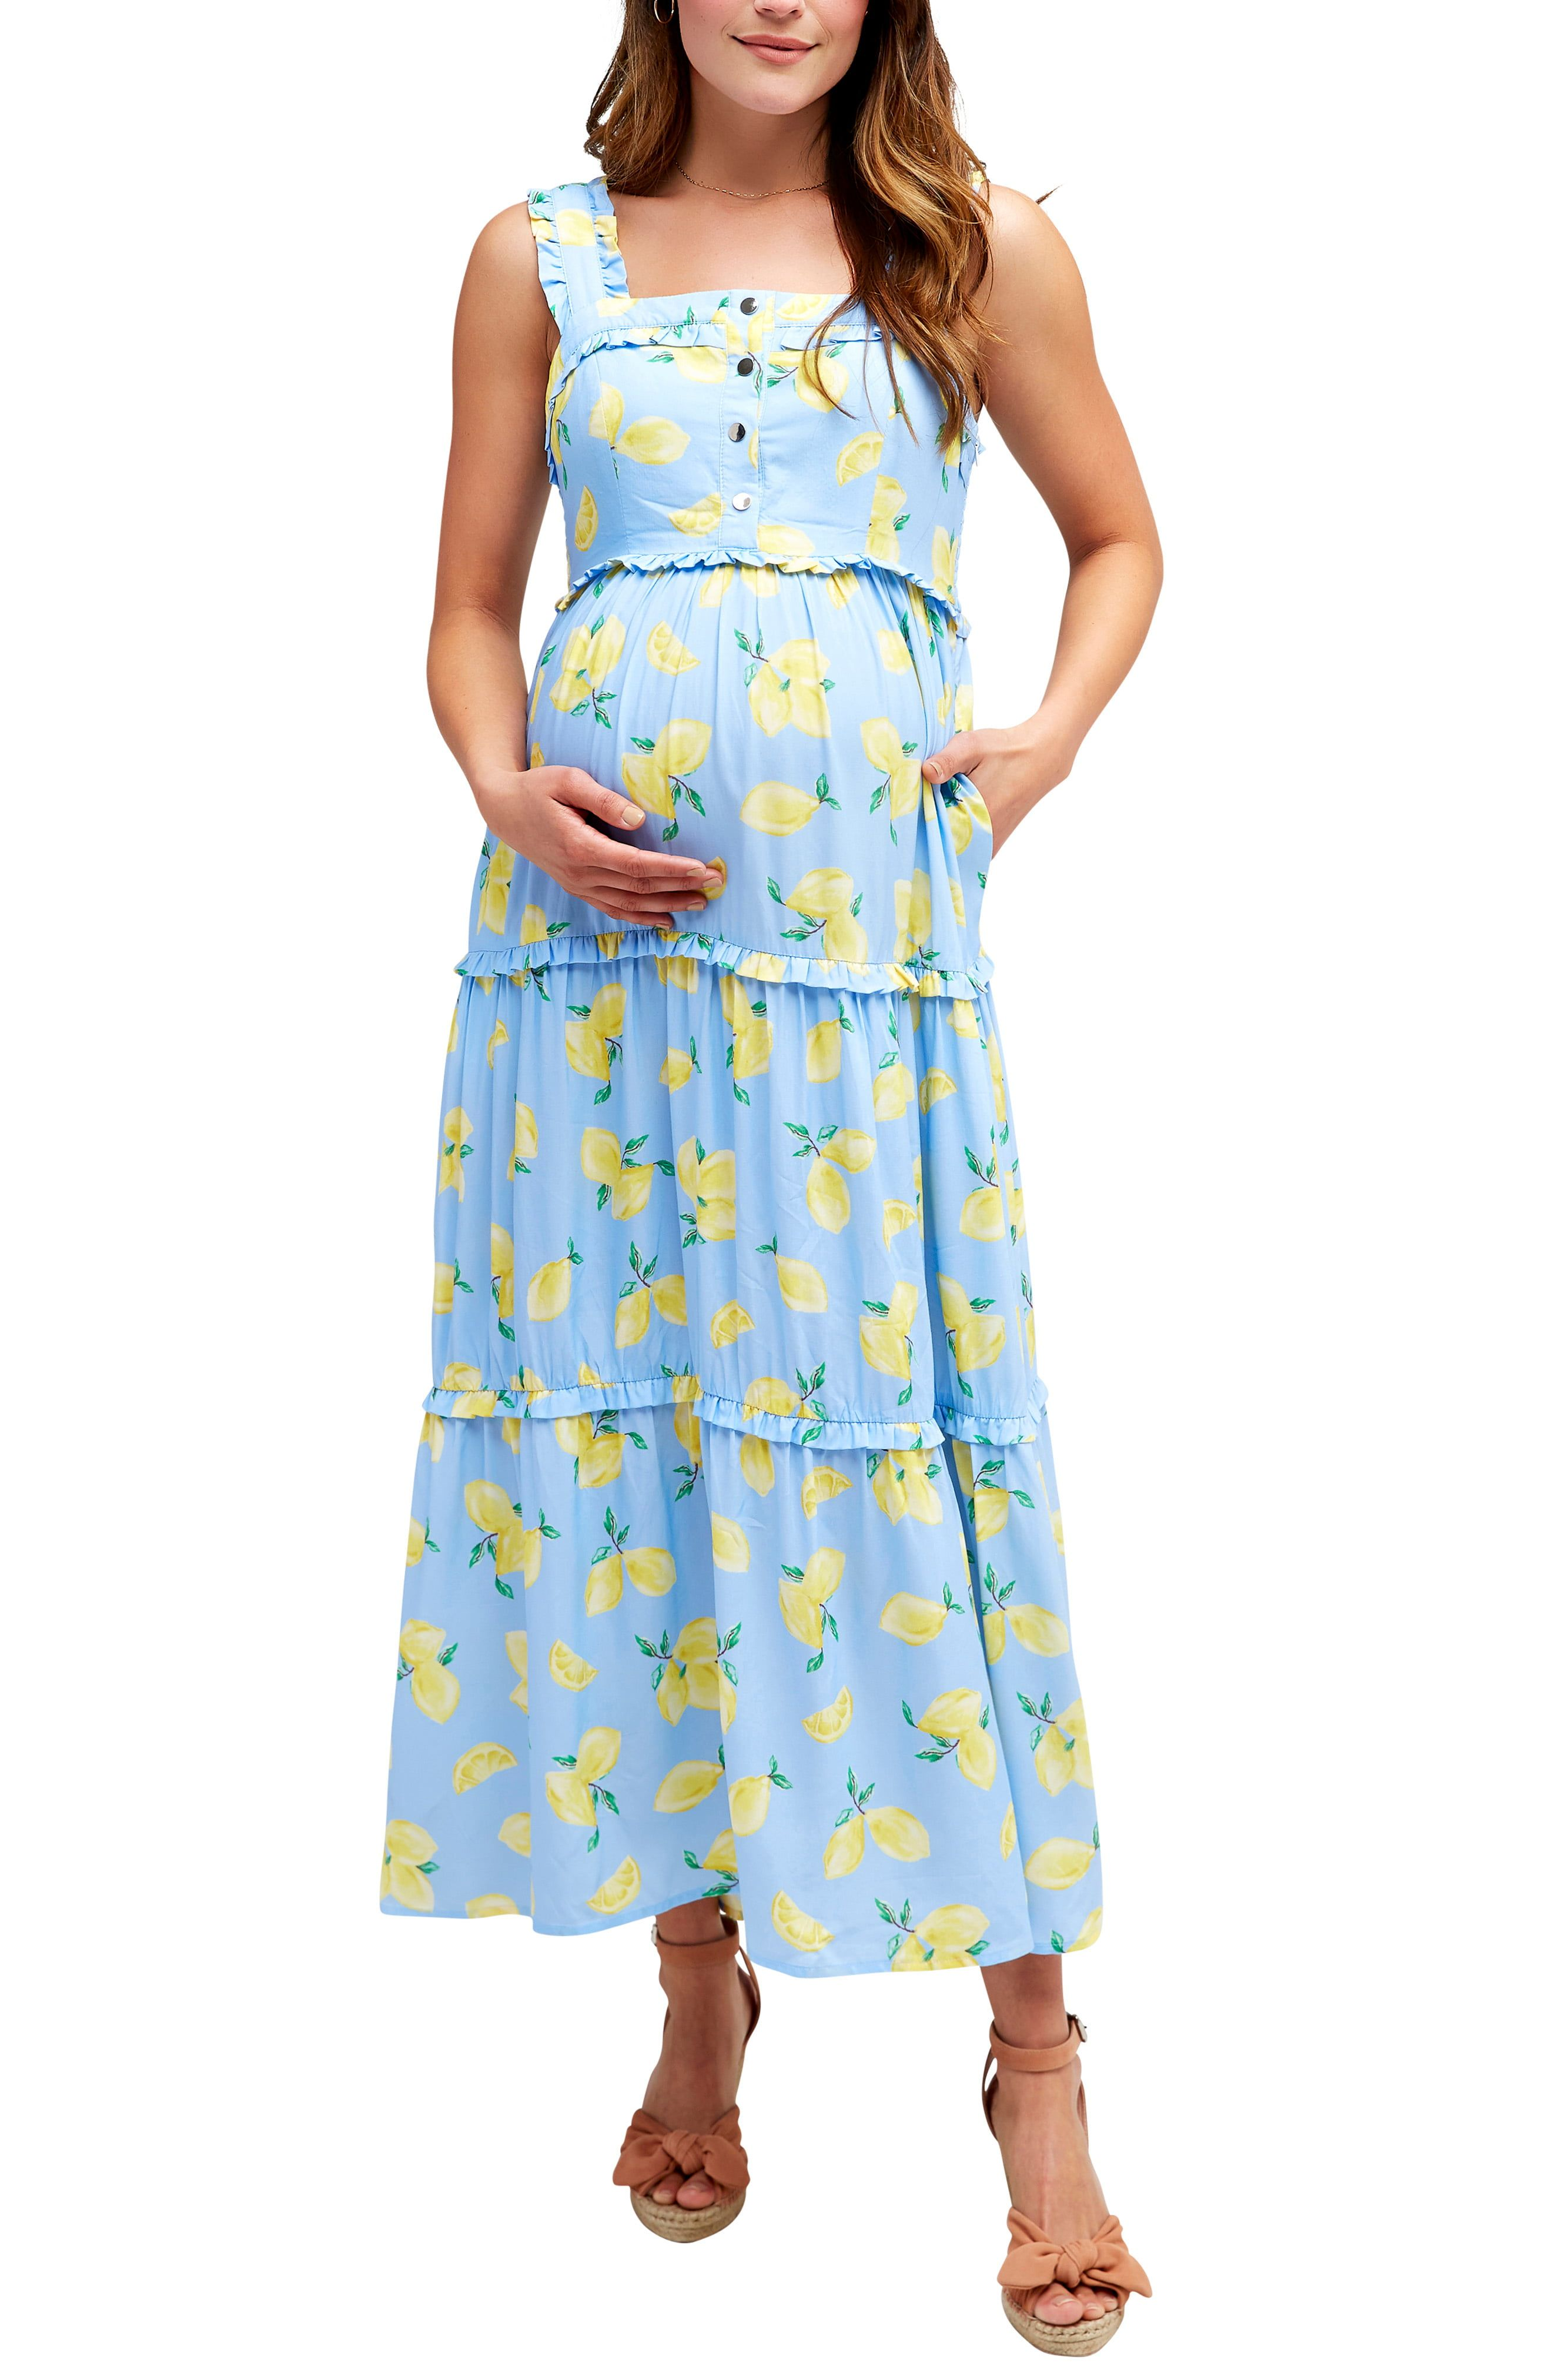 15 Cute Pregnancy Outfits Best Maternity Clothes 2021